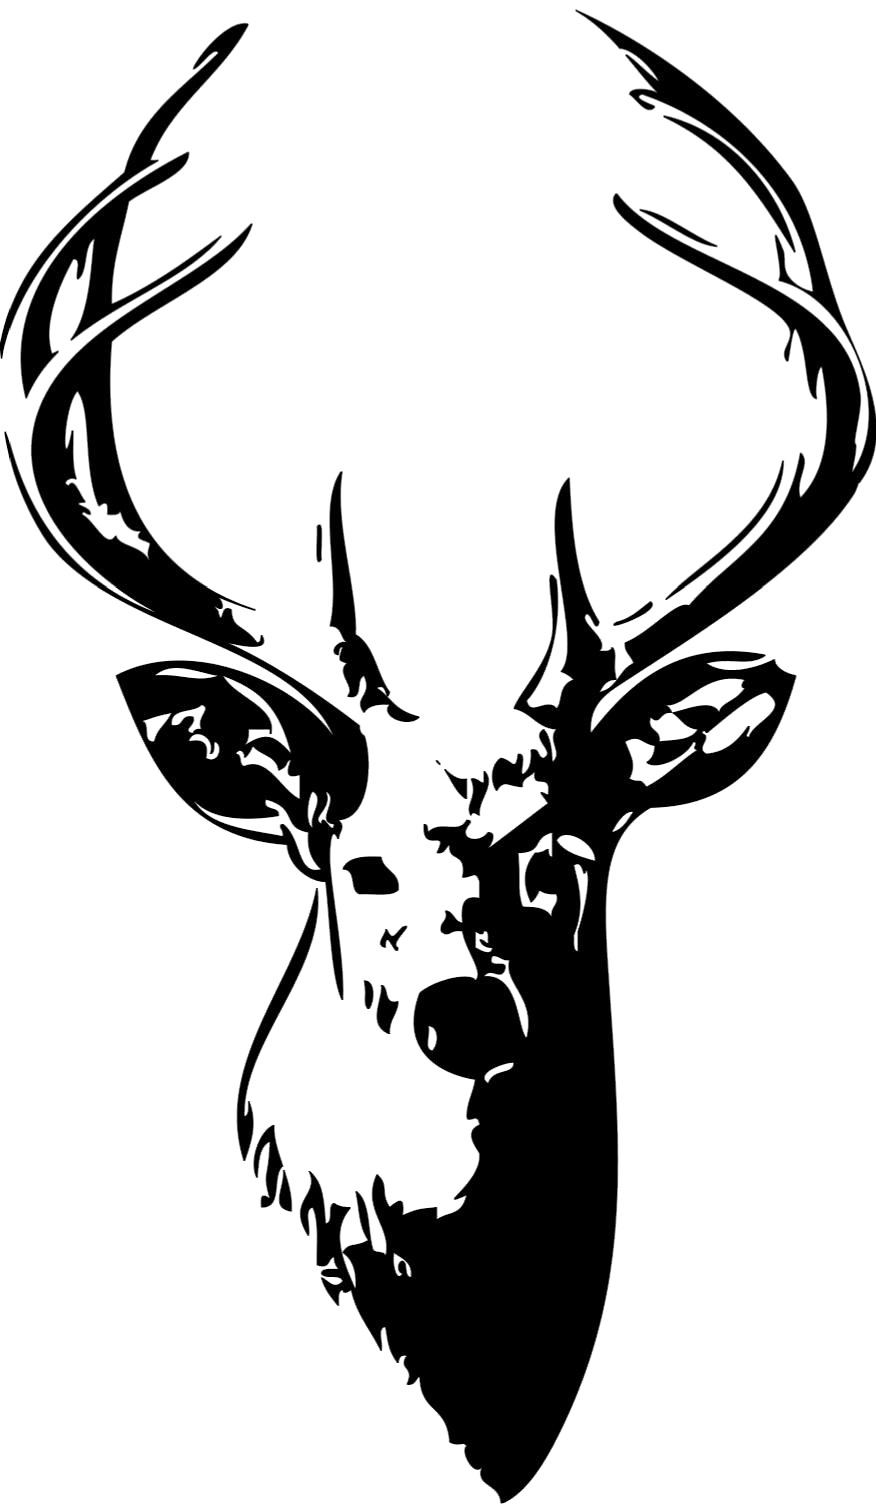 Deer head clipart black and white banner free stock Deer head clipart black and white 2 » Clipart Station banner free stock